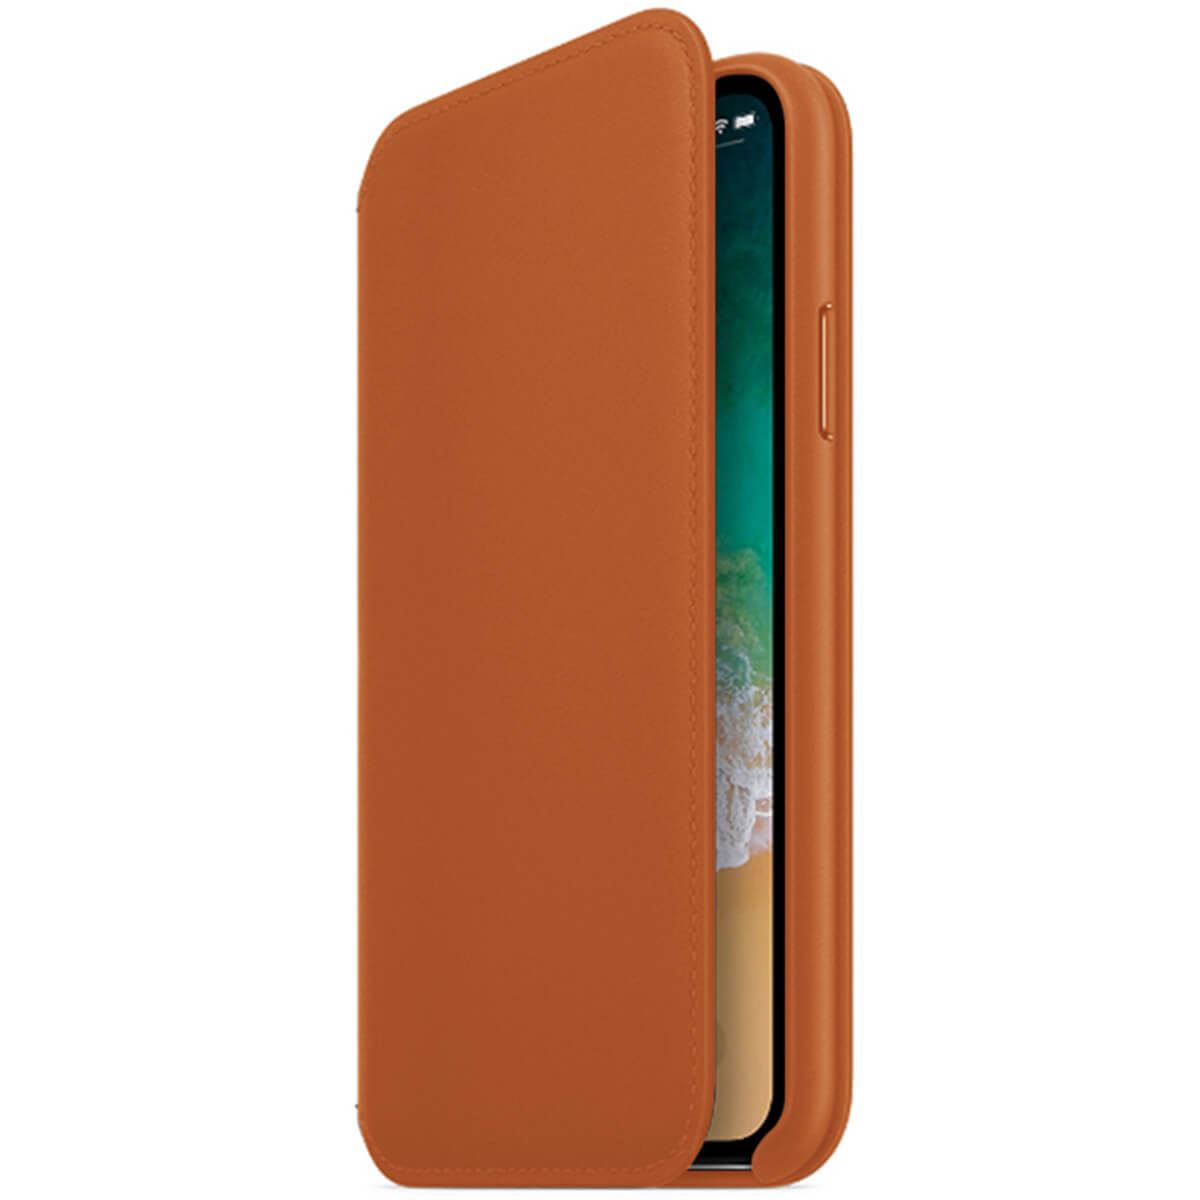 Genuine-Leather-Folio-Flip-Wallet-Case-Cover-For-Apple-iPhone-X-8-7-6S-6-Plus thumbnail 21